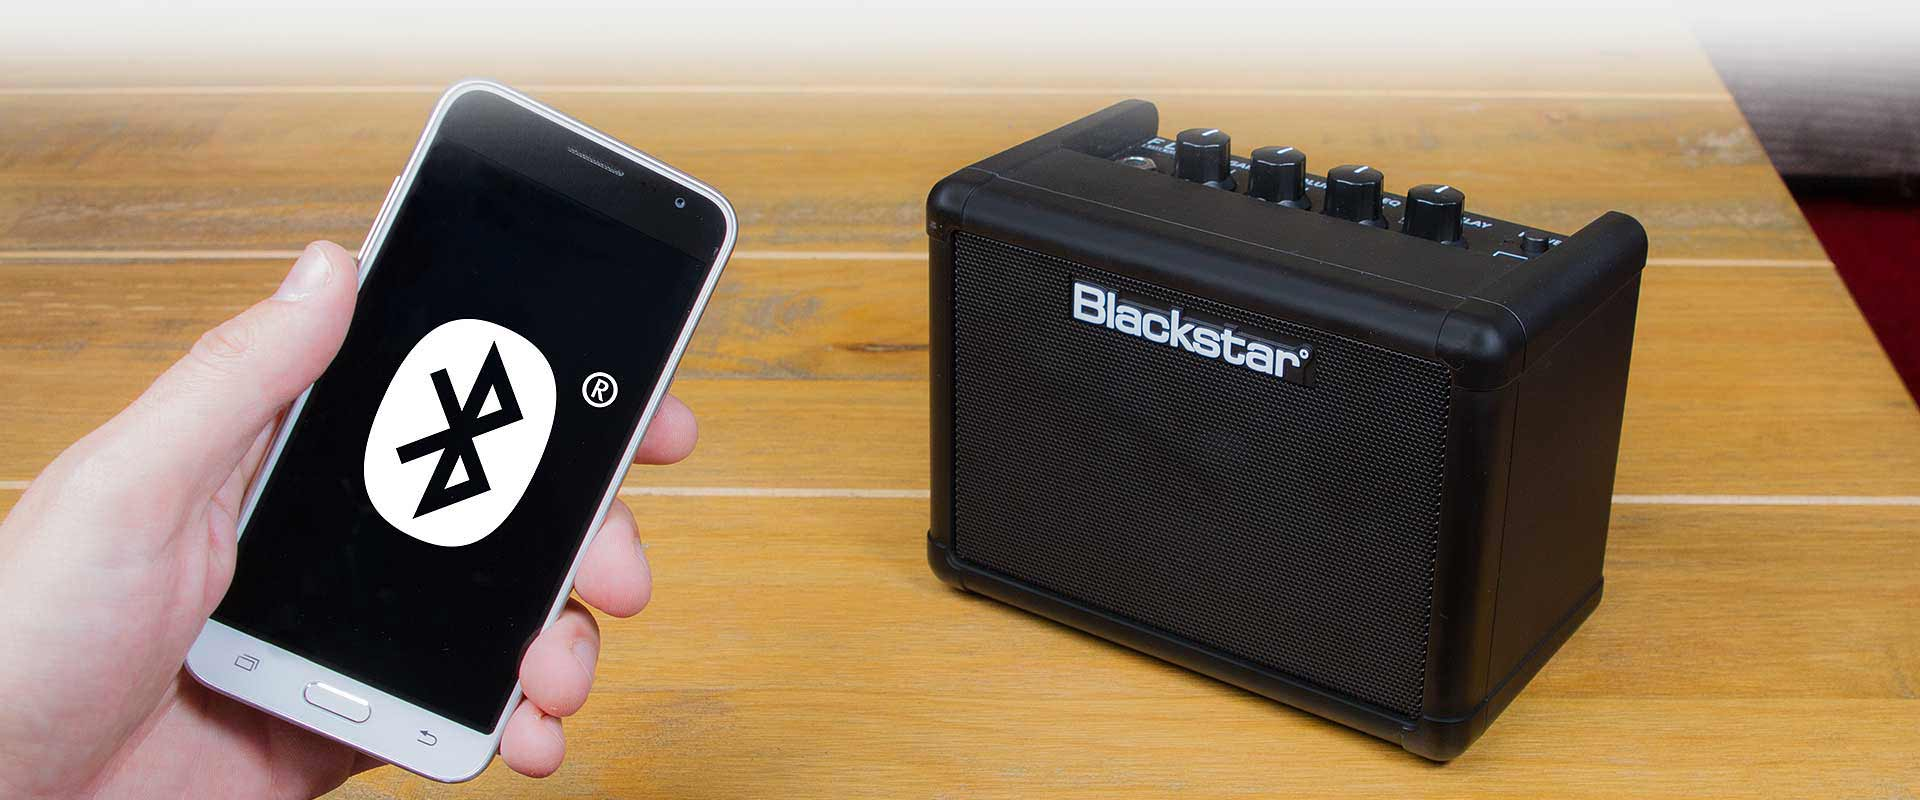 La guitara music center - Blackstar FLY 3 Bluetooth Guitar Amplifier